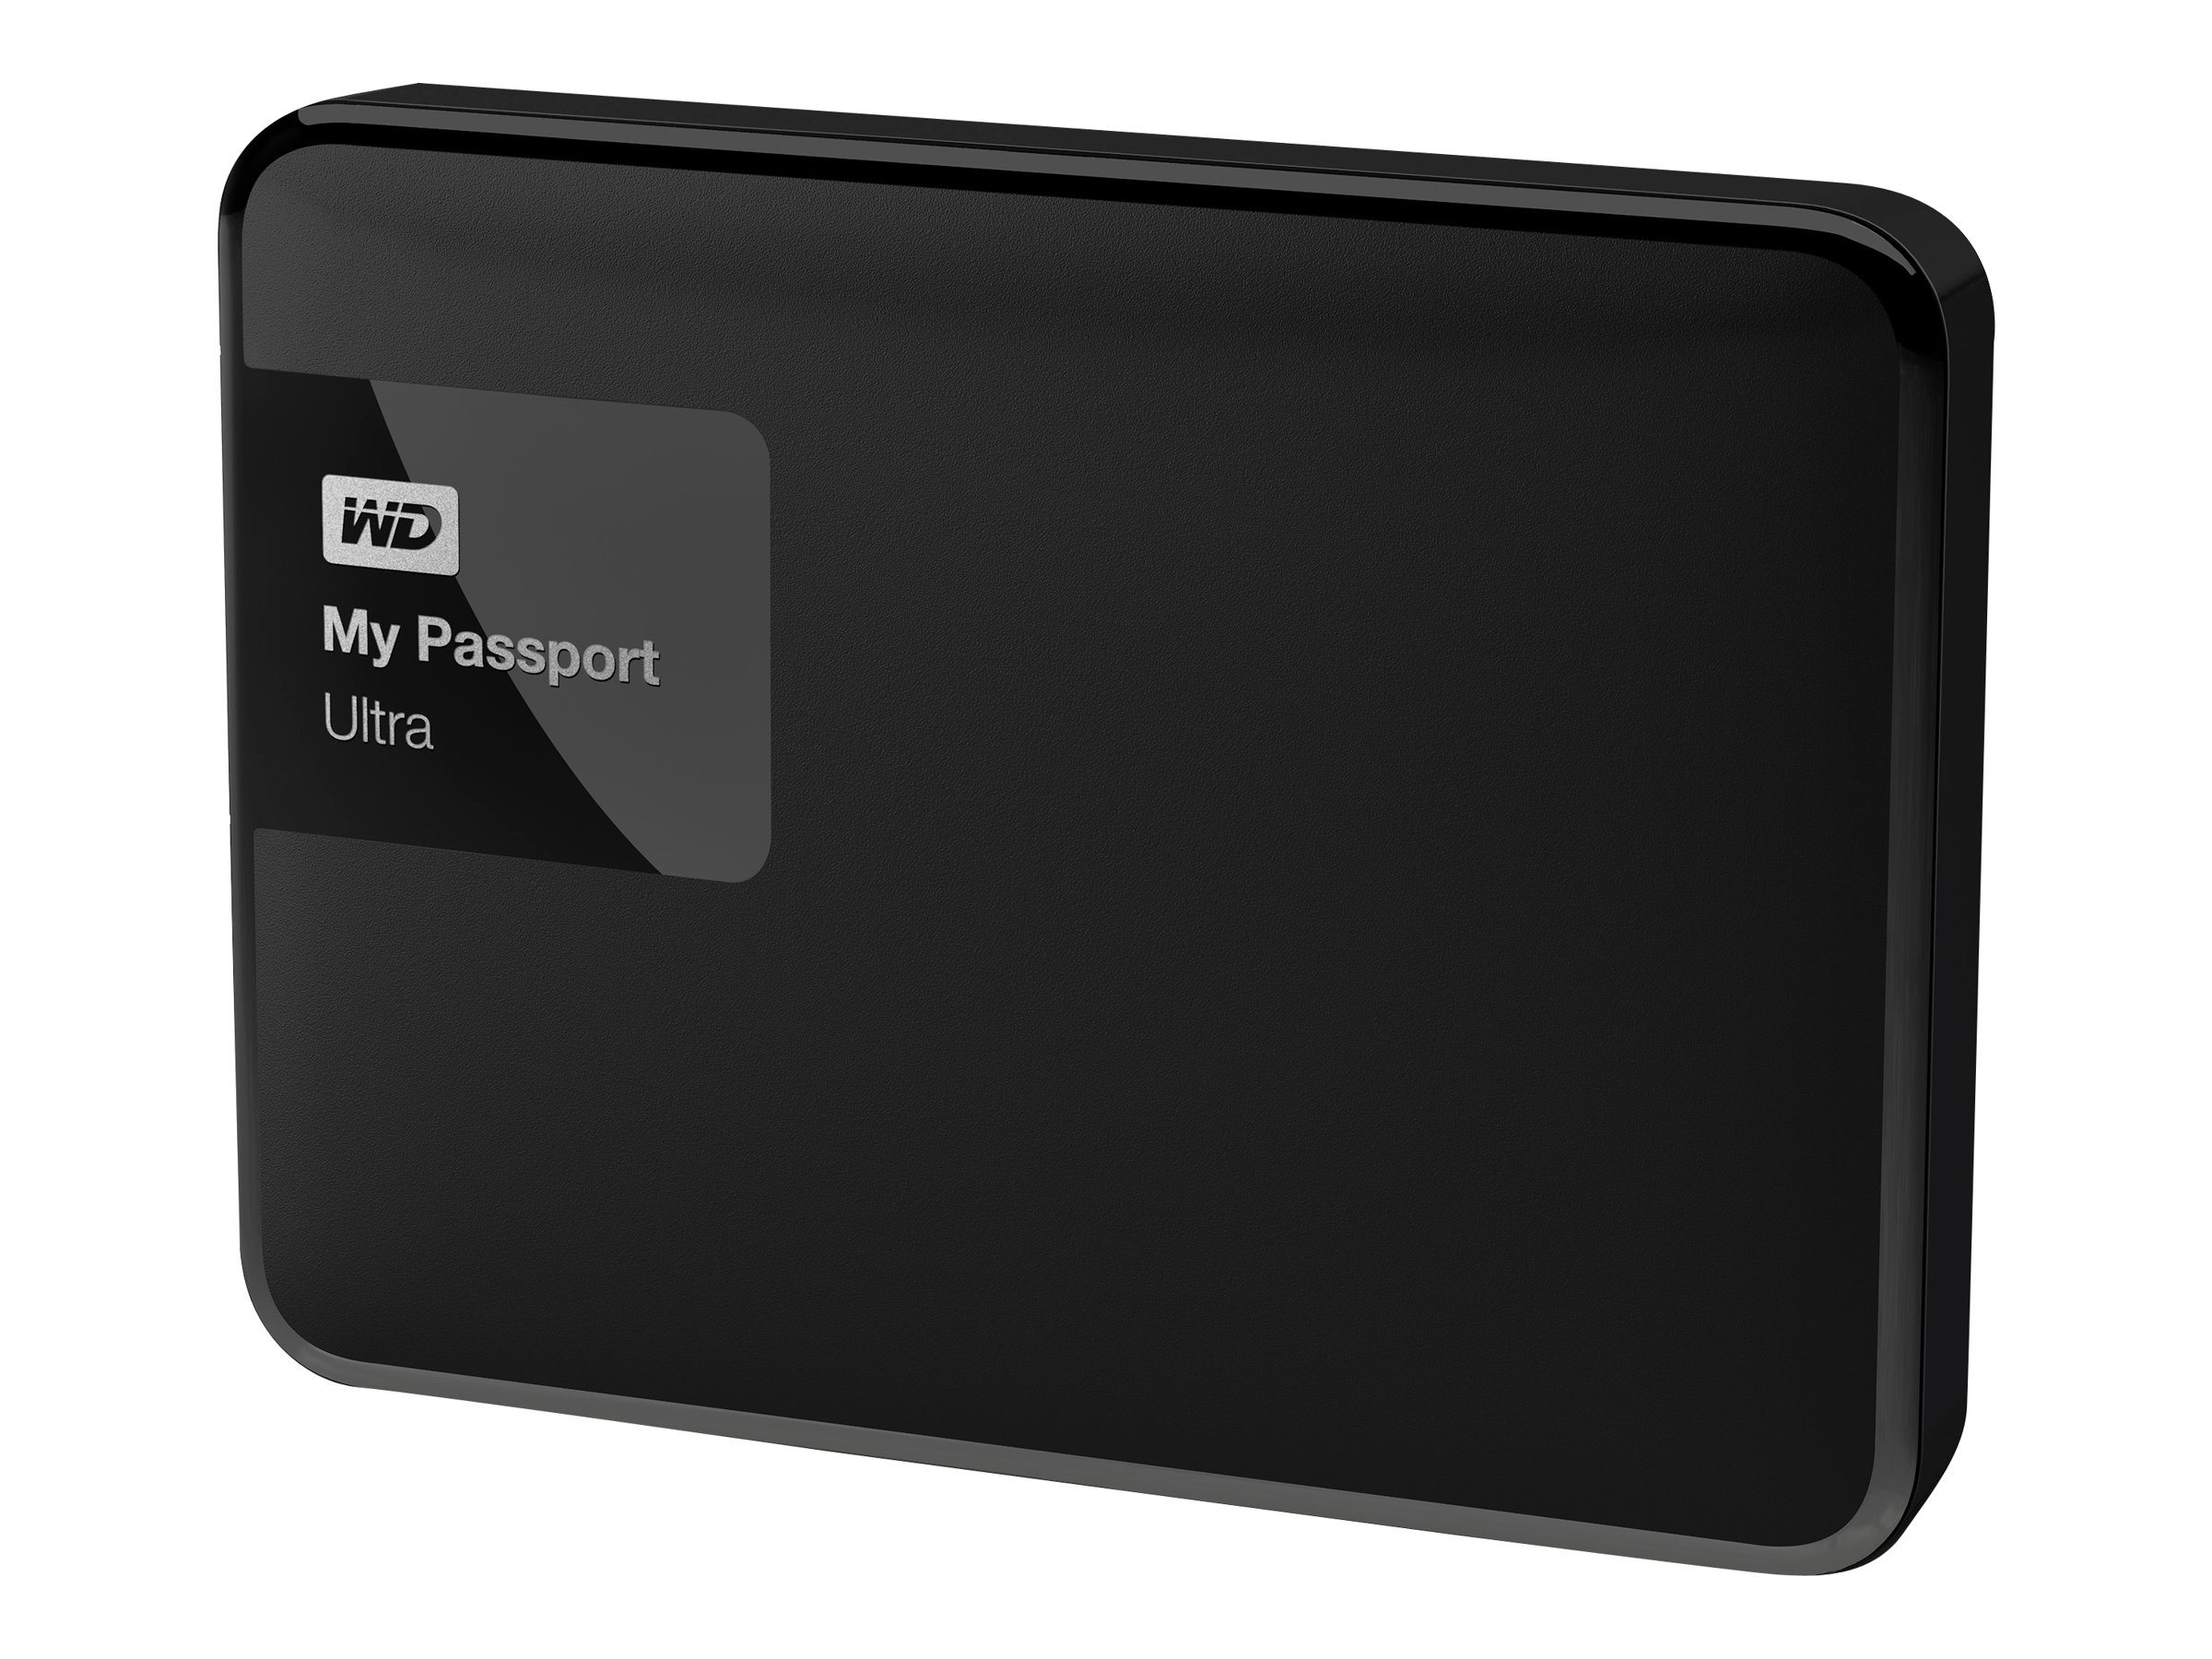 WD 2TB My Passport Ultra USB 3.0 Portable Hard Drive - Black, WDBBKD0020BBK-NESN, 21089083, Hard Drives - External